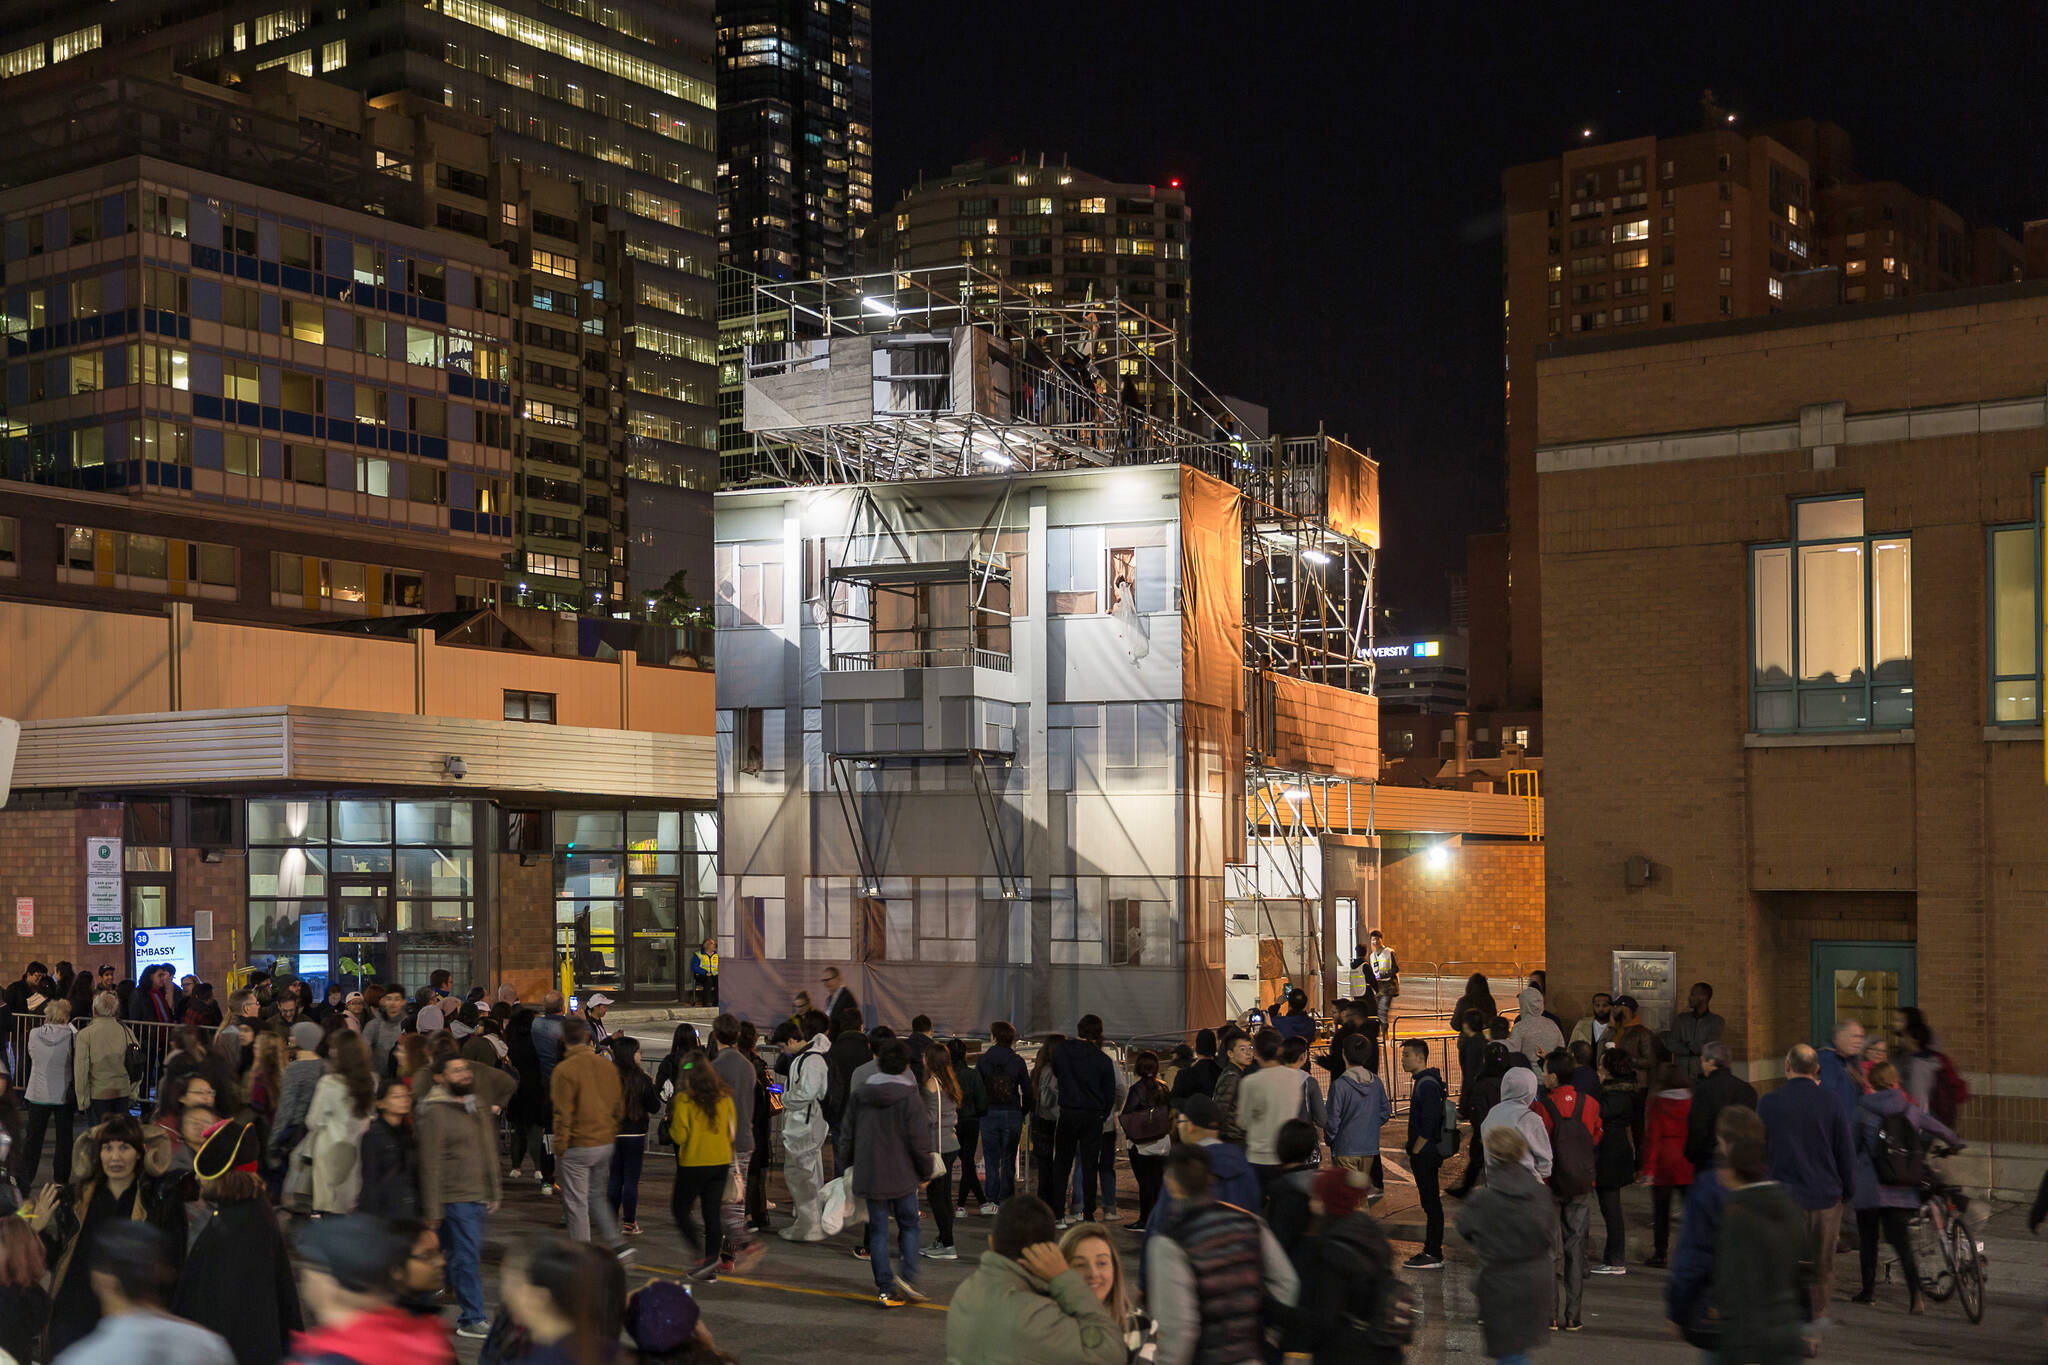 nuit blanche toronto 2017